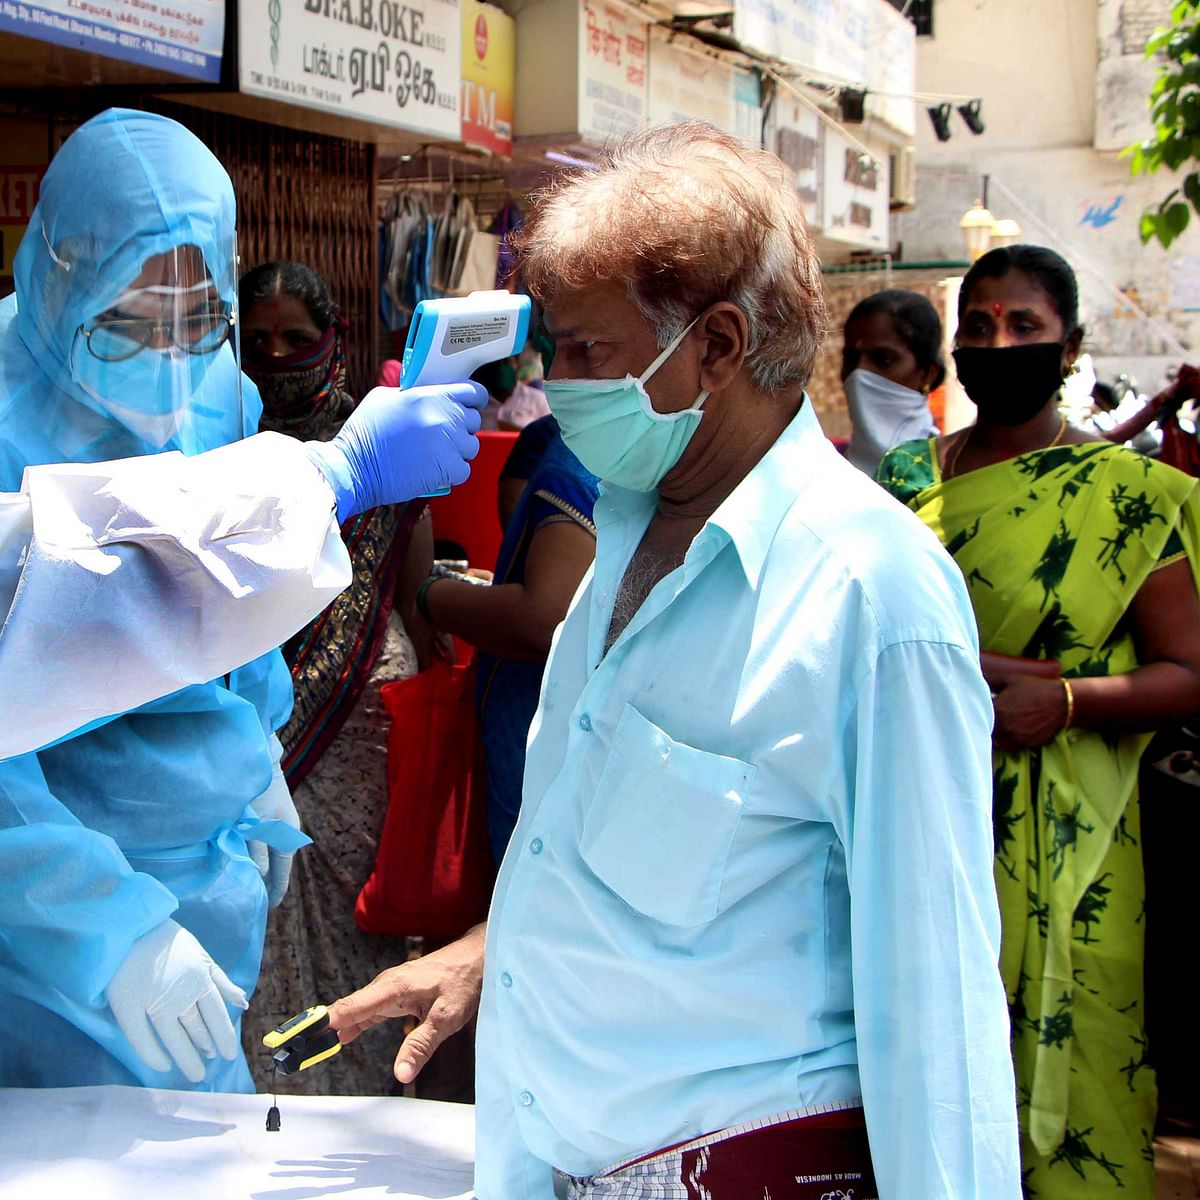 Coronavirus in Maharashtra: With 4,153 new cases, total tally in state reaches 17,84,361